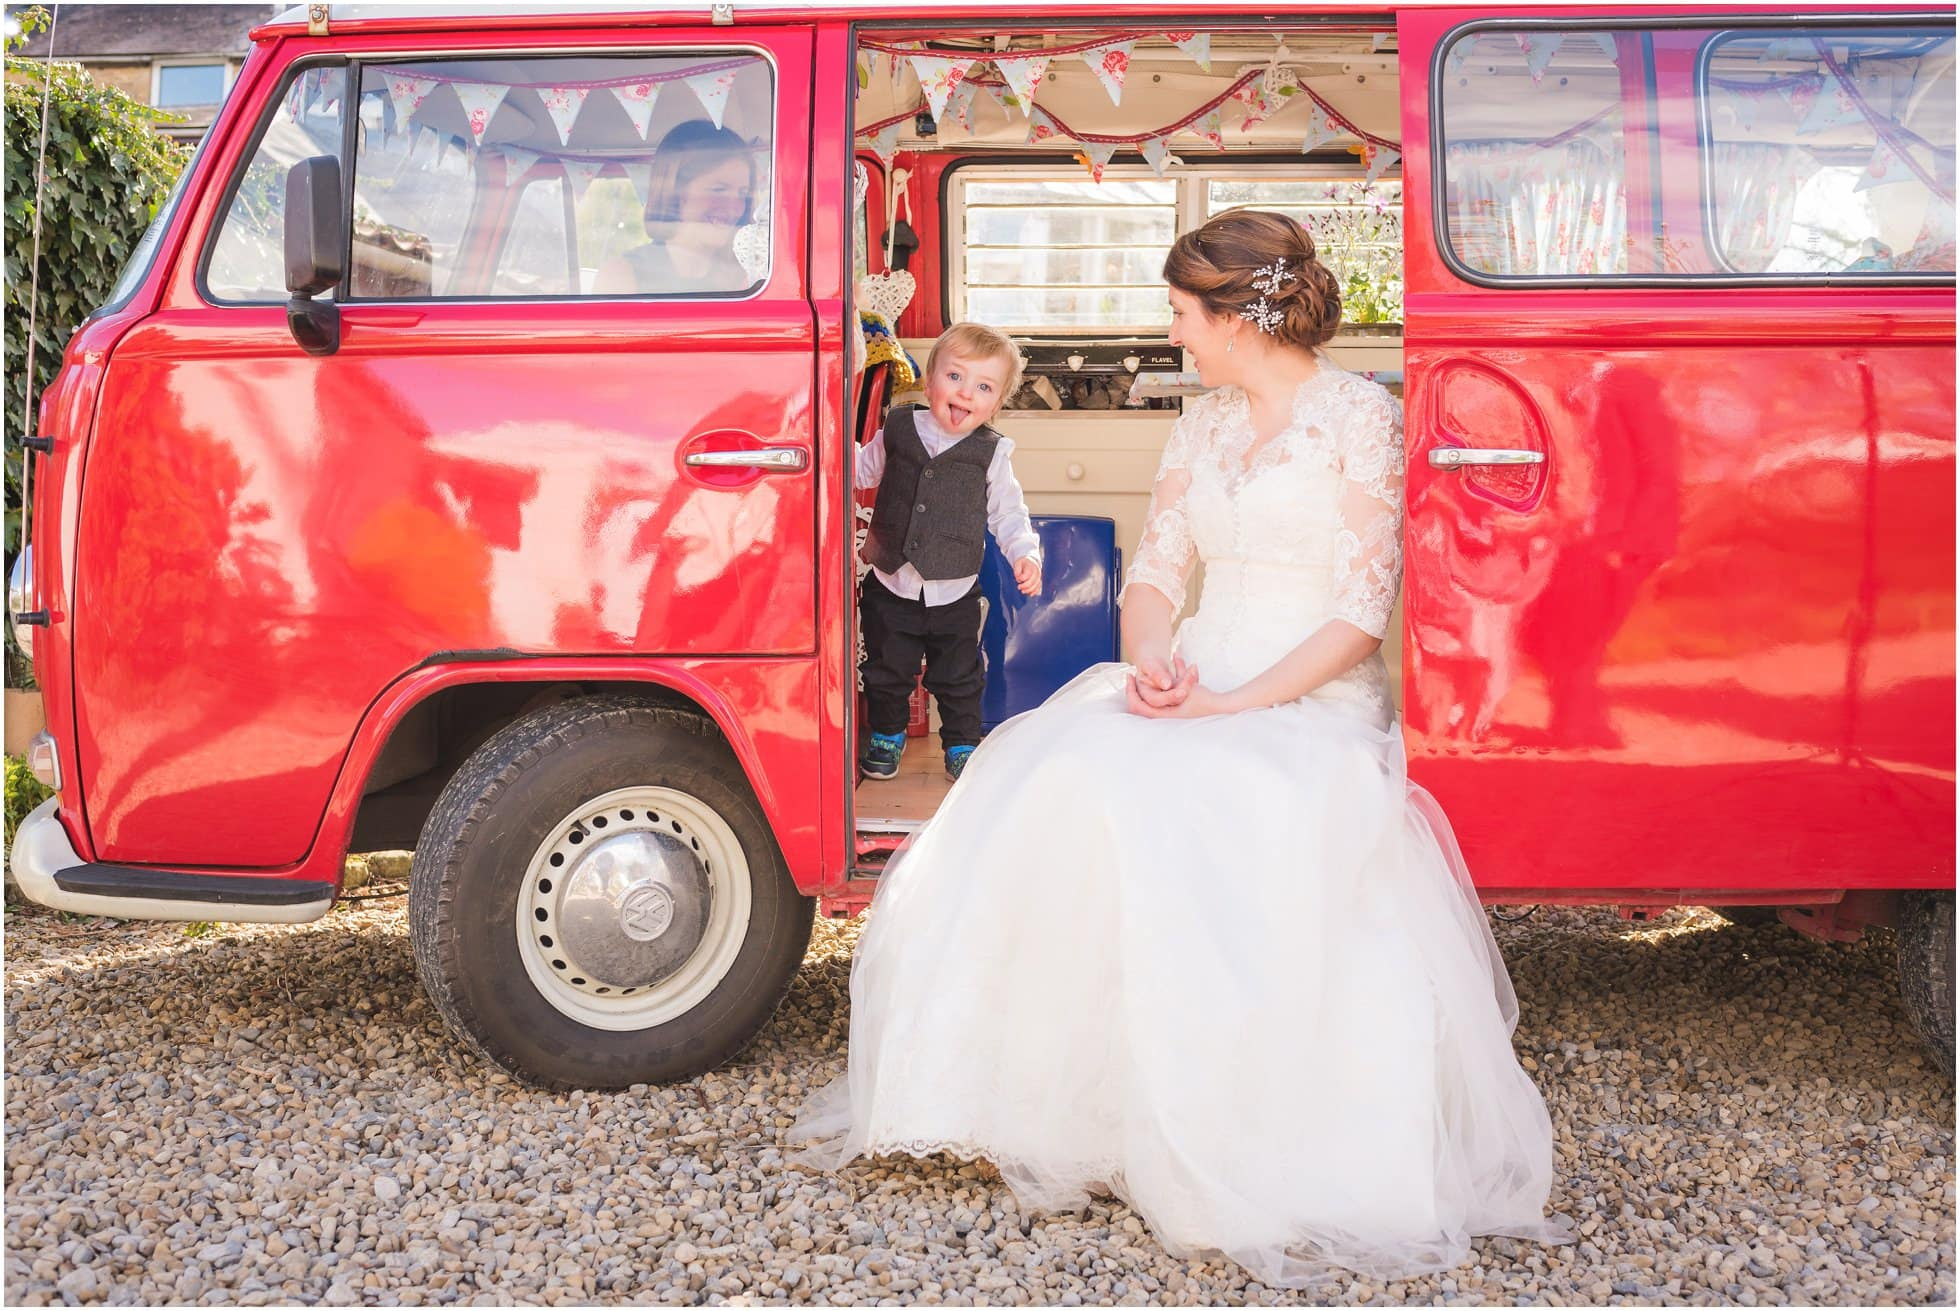 VW campervan and a cheeky chappy!